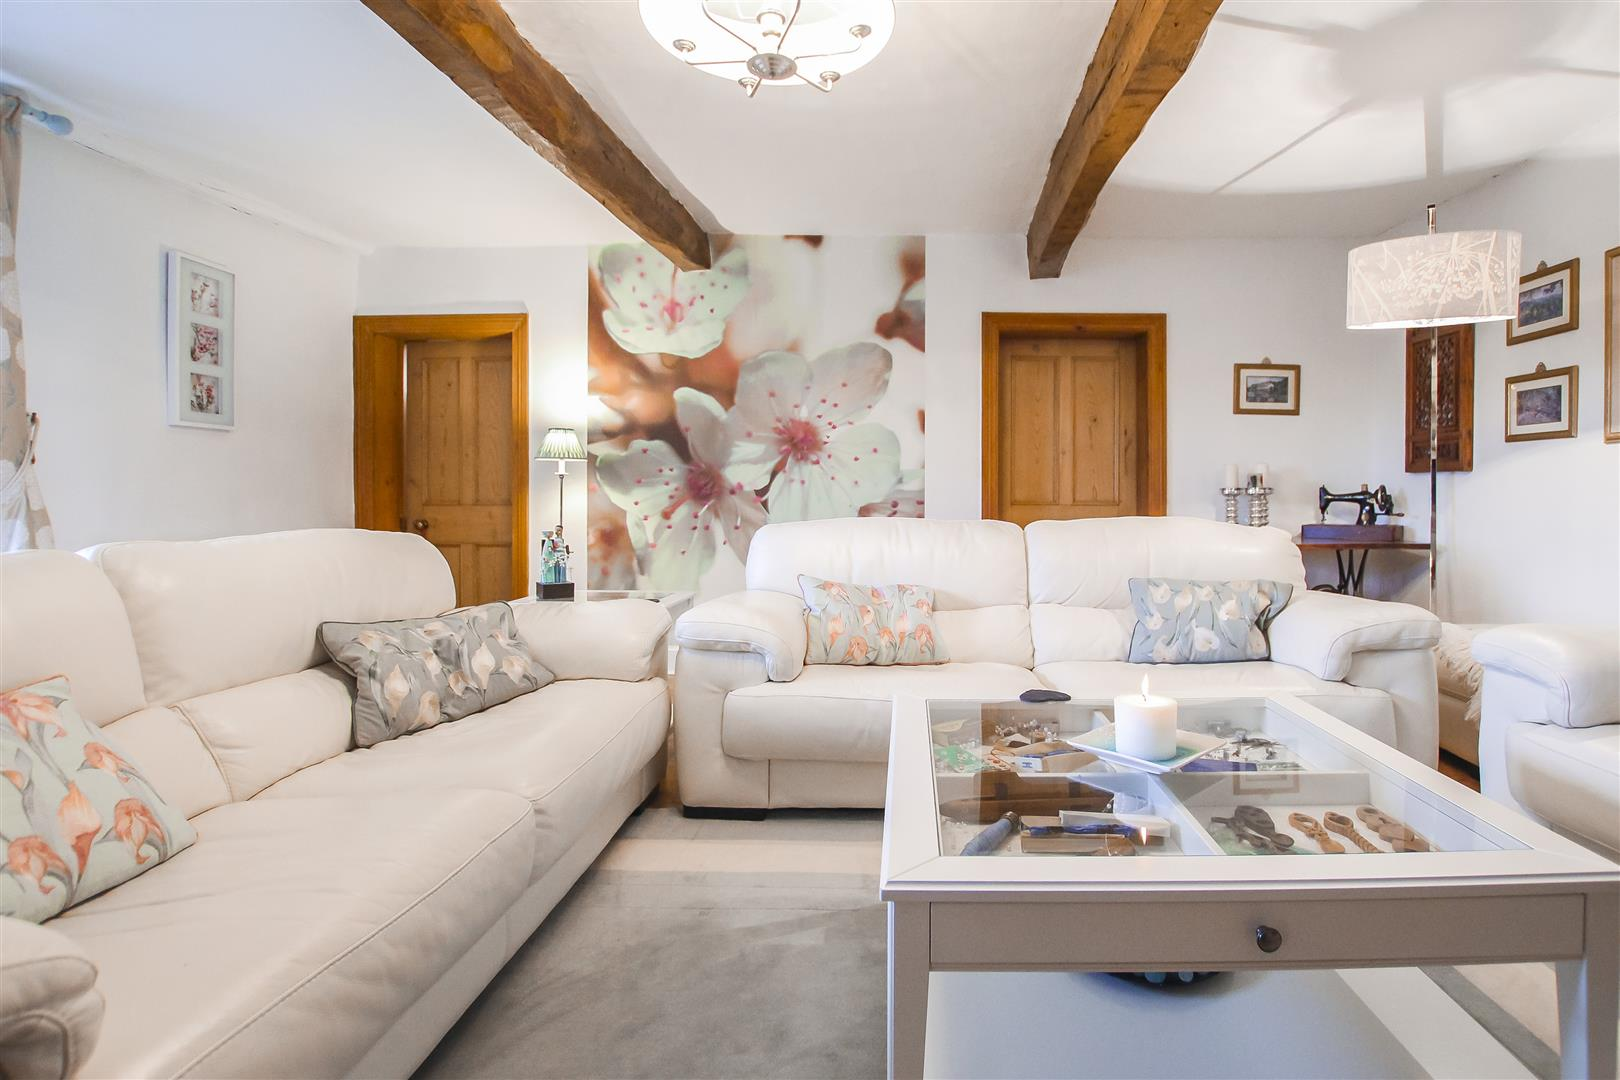 4 Bedroom House For Sale - Reception Room